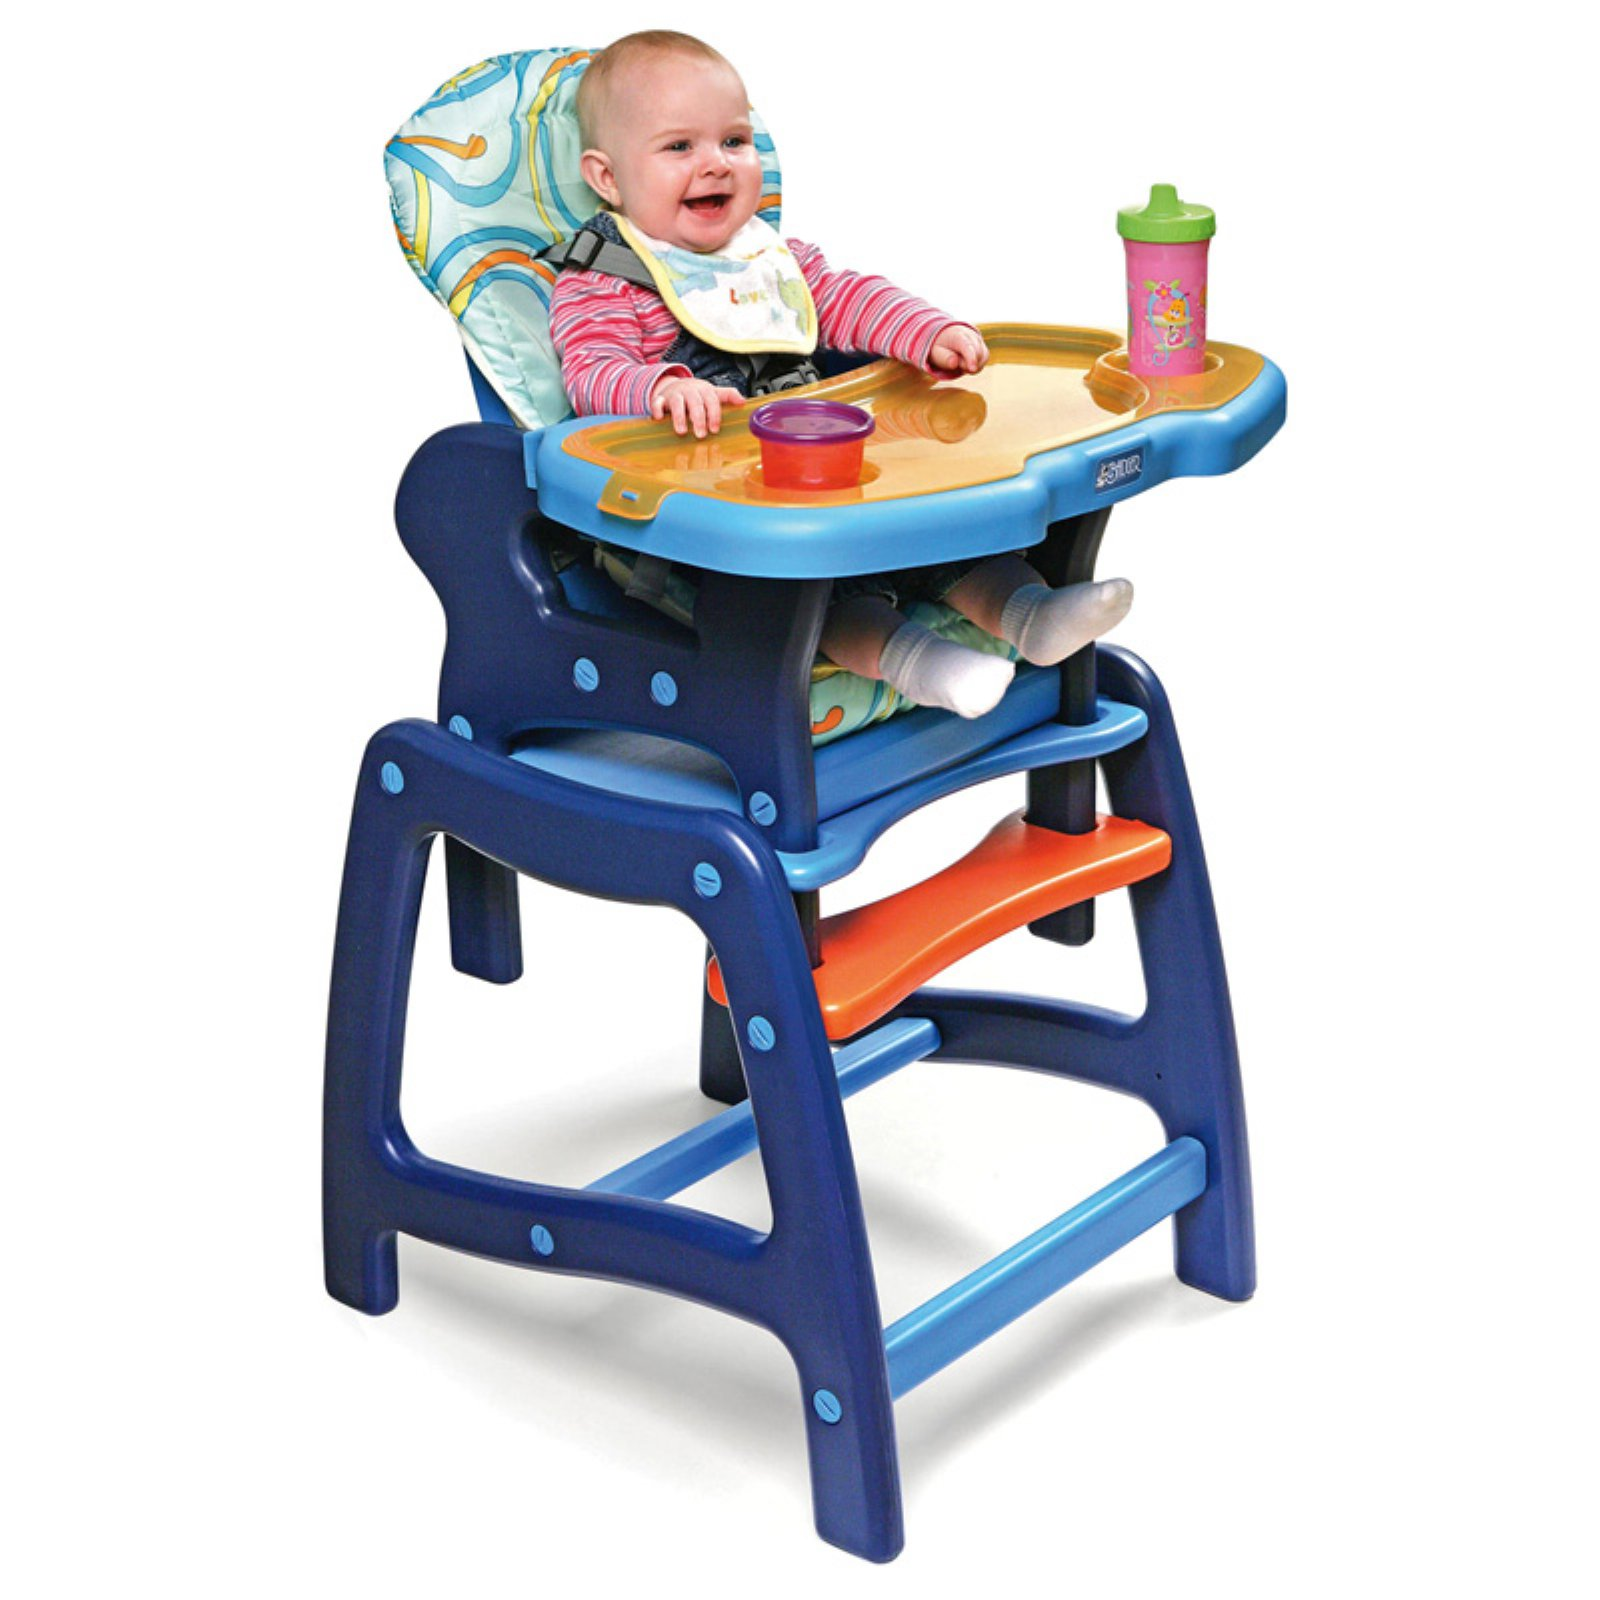 Badger Basket Envee Baby High Chair with Playtable Conversion, Blue by Badger Basket